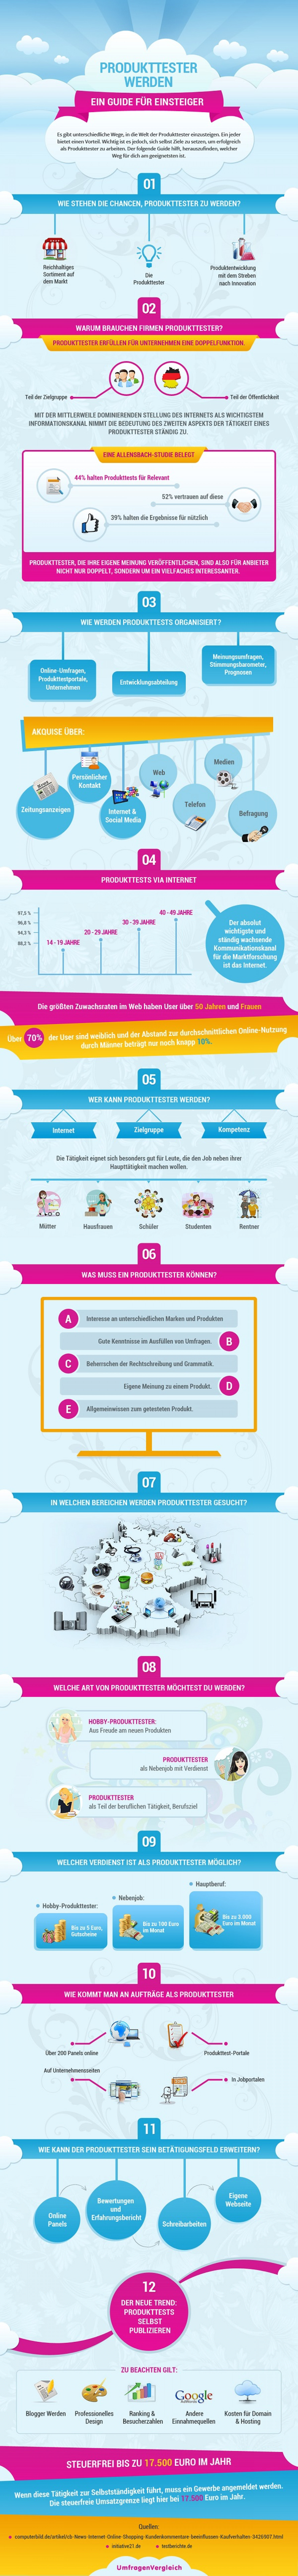 Produkttester werden (How to become a Product Tester) Infographic